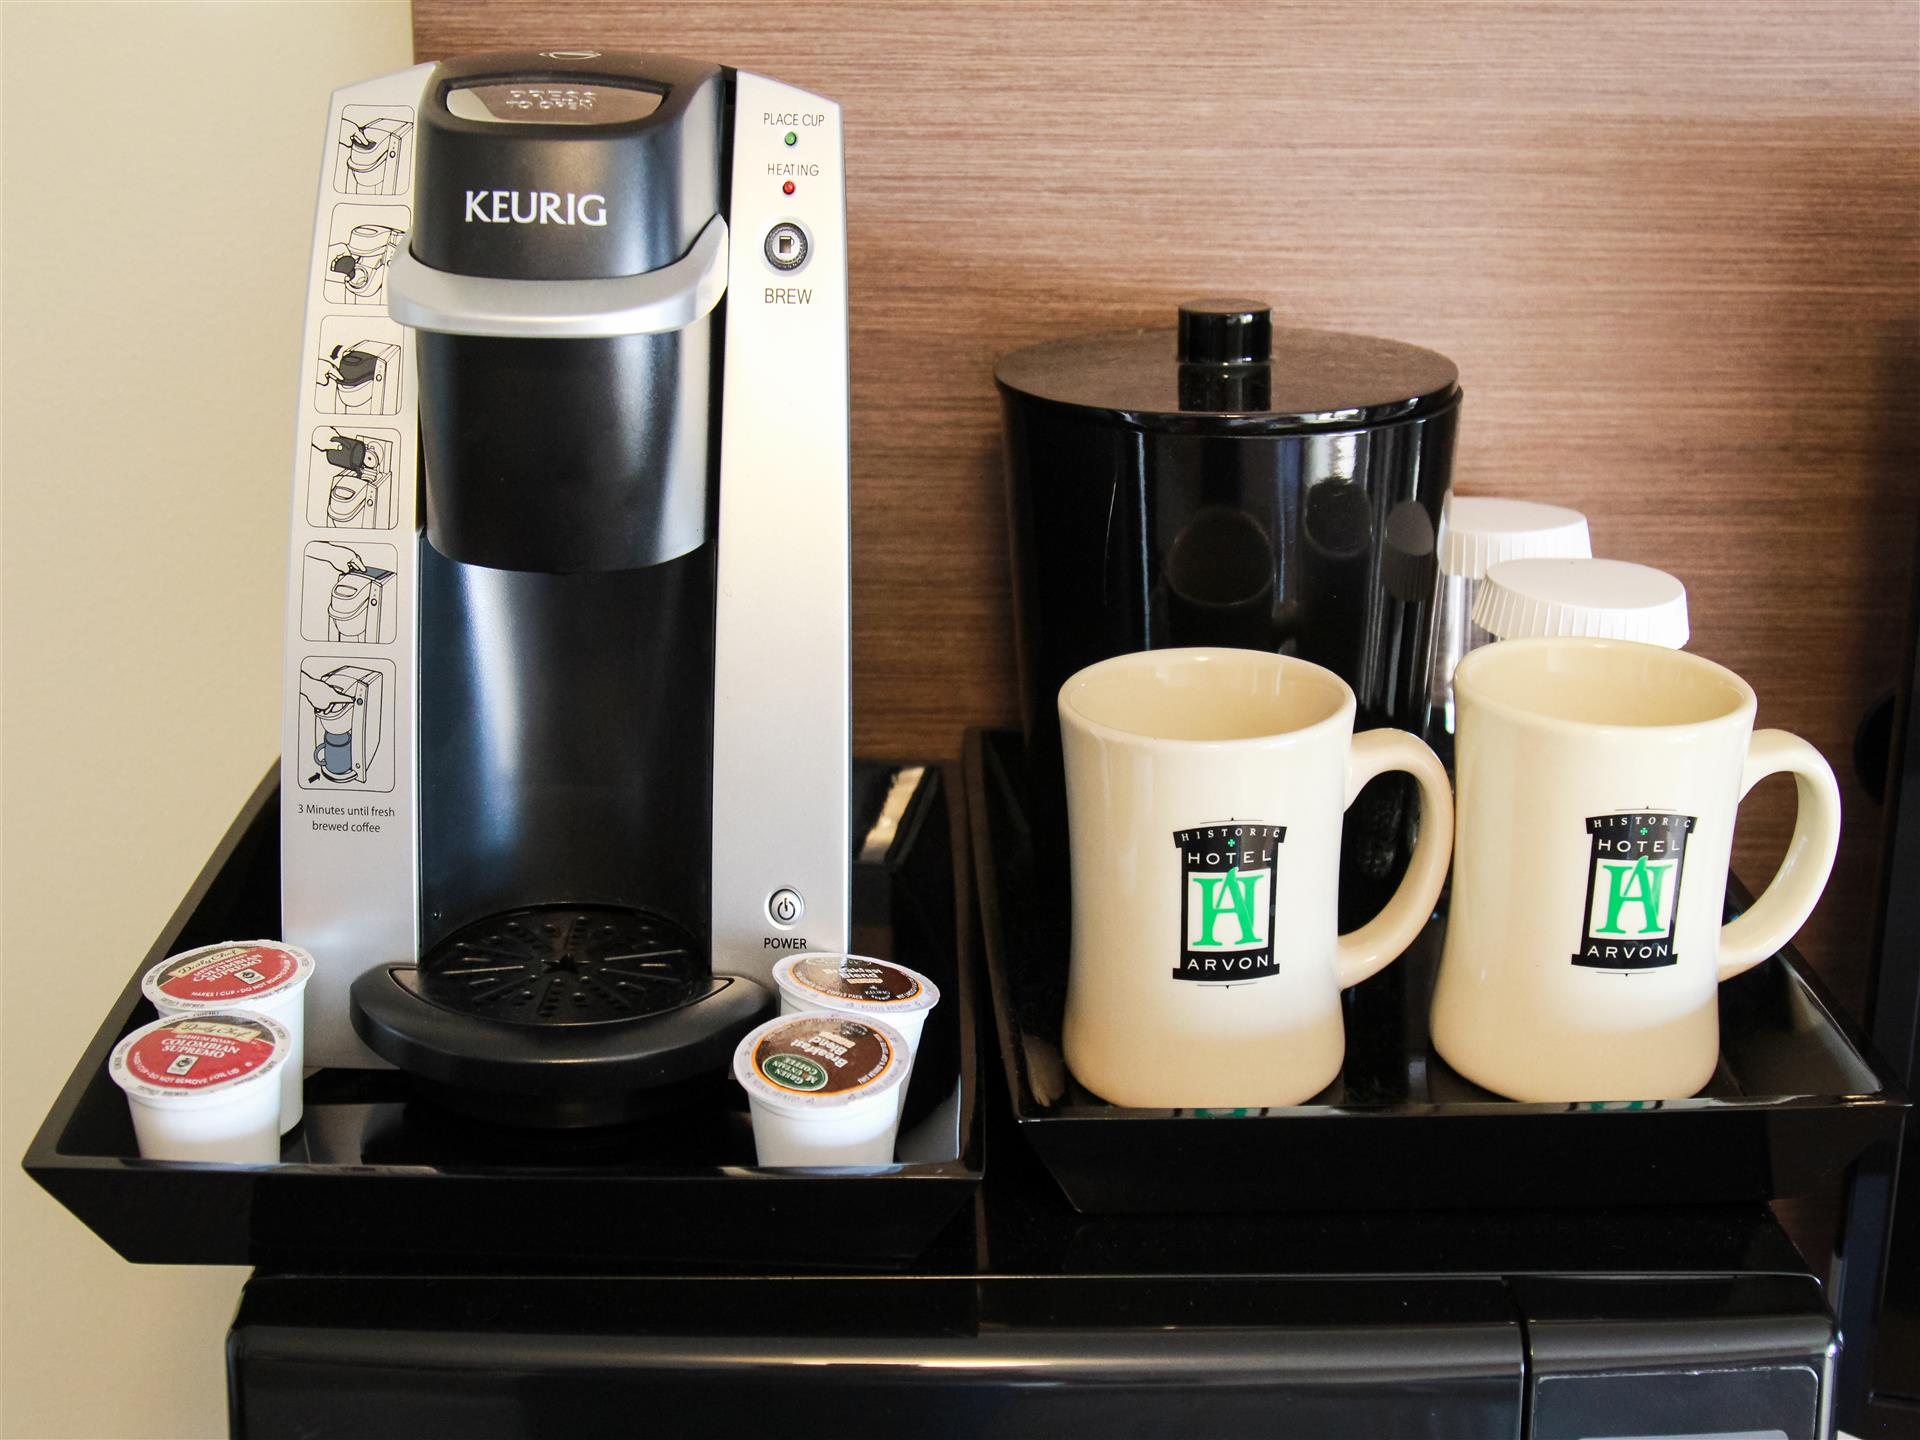 keurig being displayed with two mugs and coffee pods